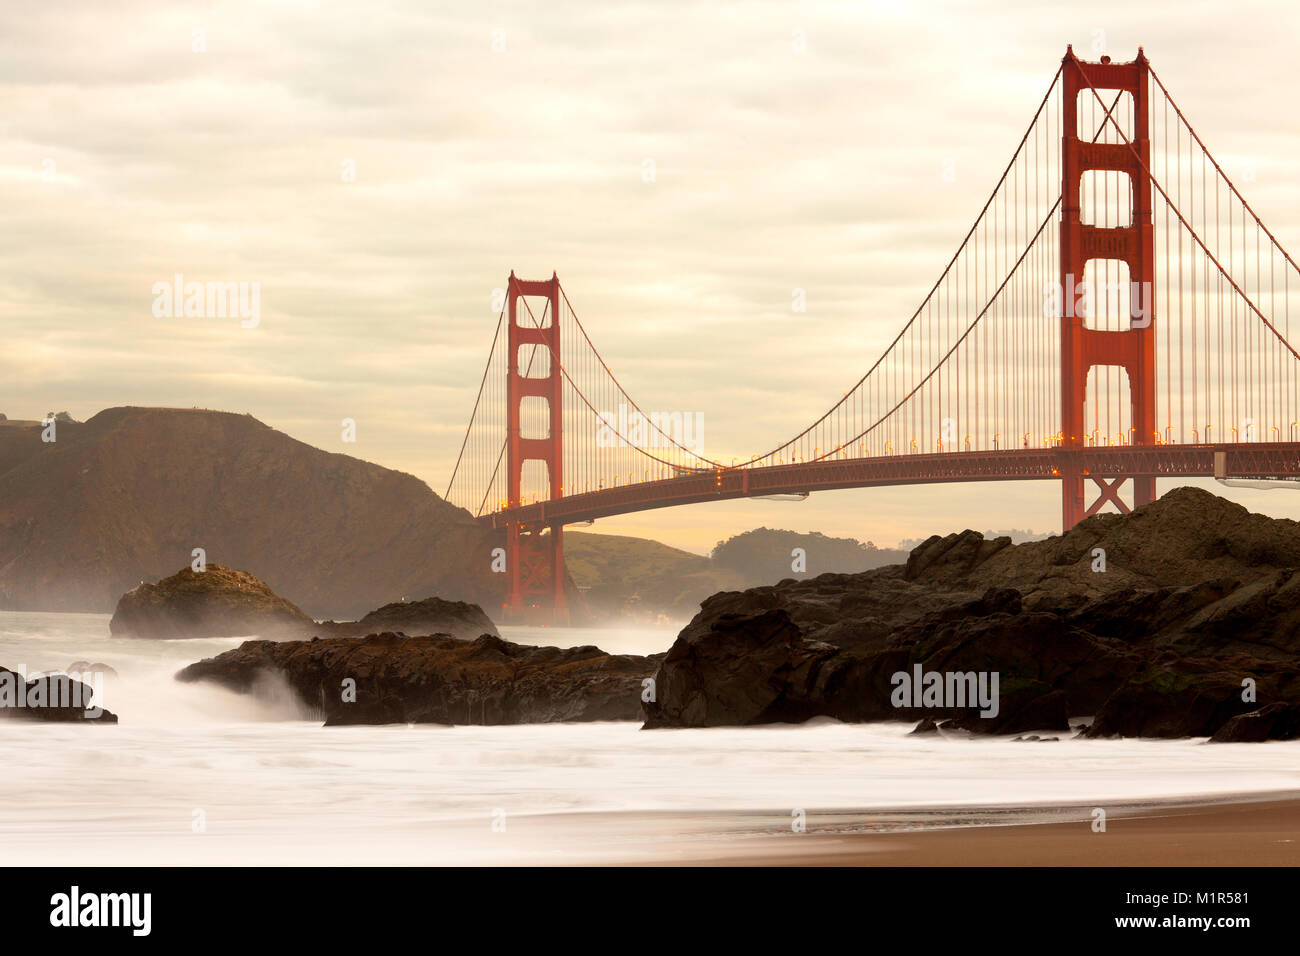 Golden Gate Bridge von Baker Beach, San Francisco, Kalifornien, USA Stockbild